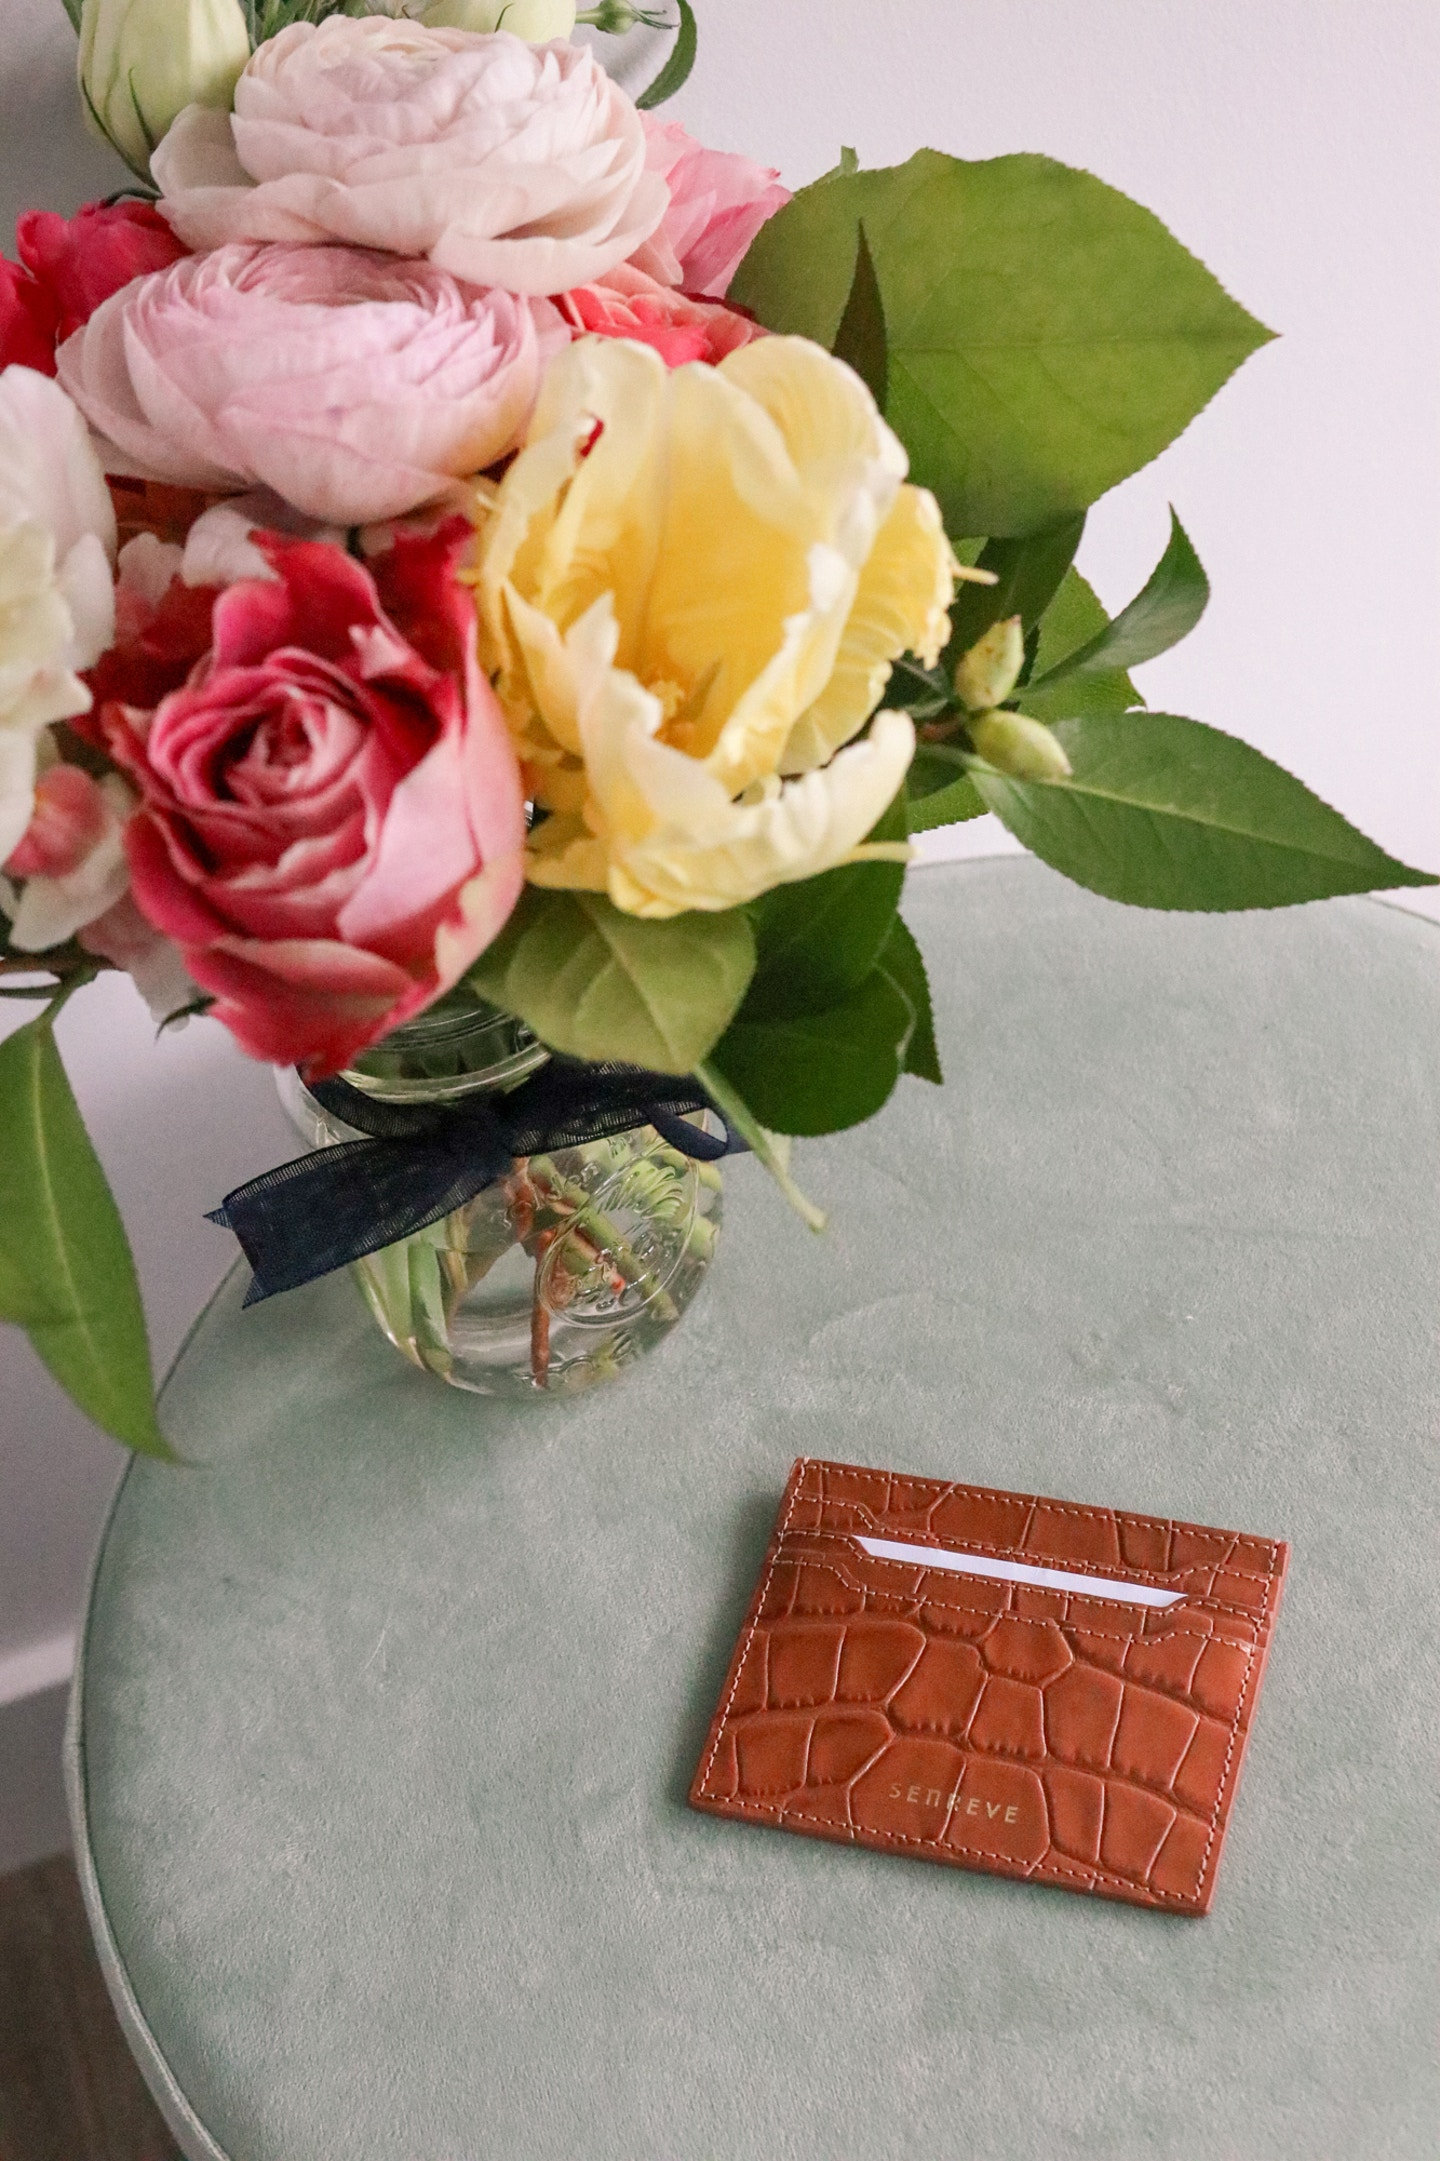 Senreve Carte Folio Dragon Chestnut card case review: this Made in Italy leather card case is perfect for mini bags or slipping into your pocket on a walk. It's also a gender neutral wallet and comes in many beautiful colours.